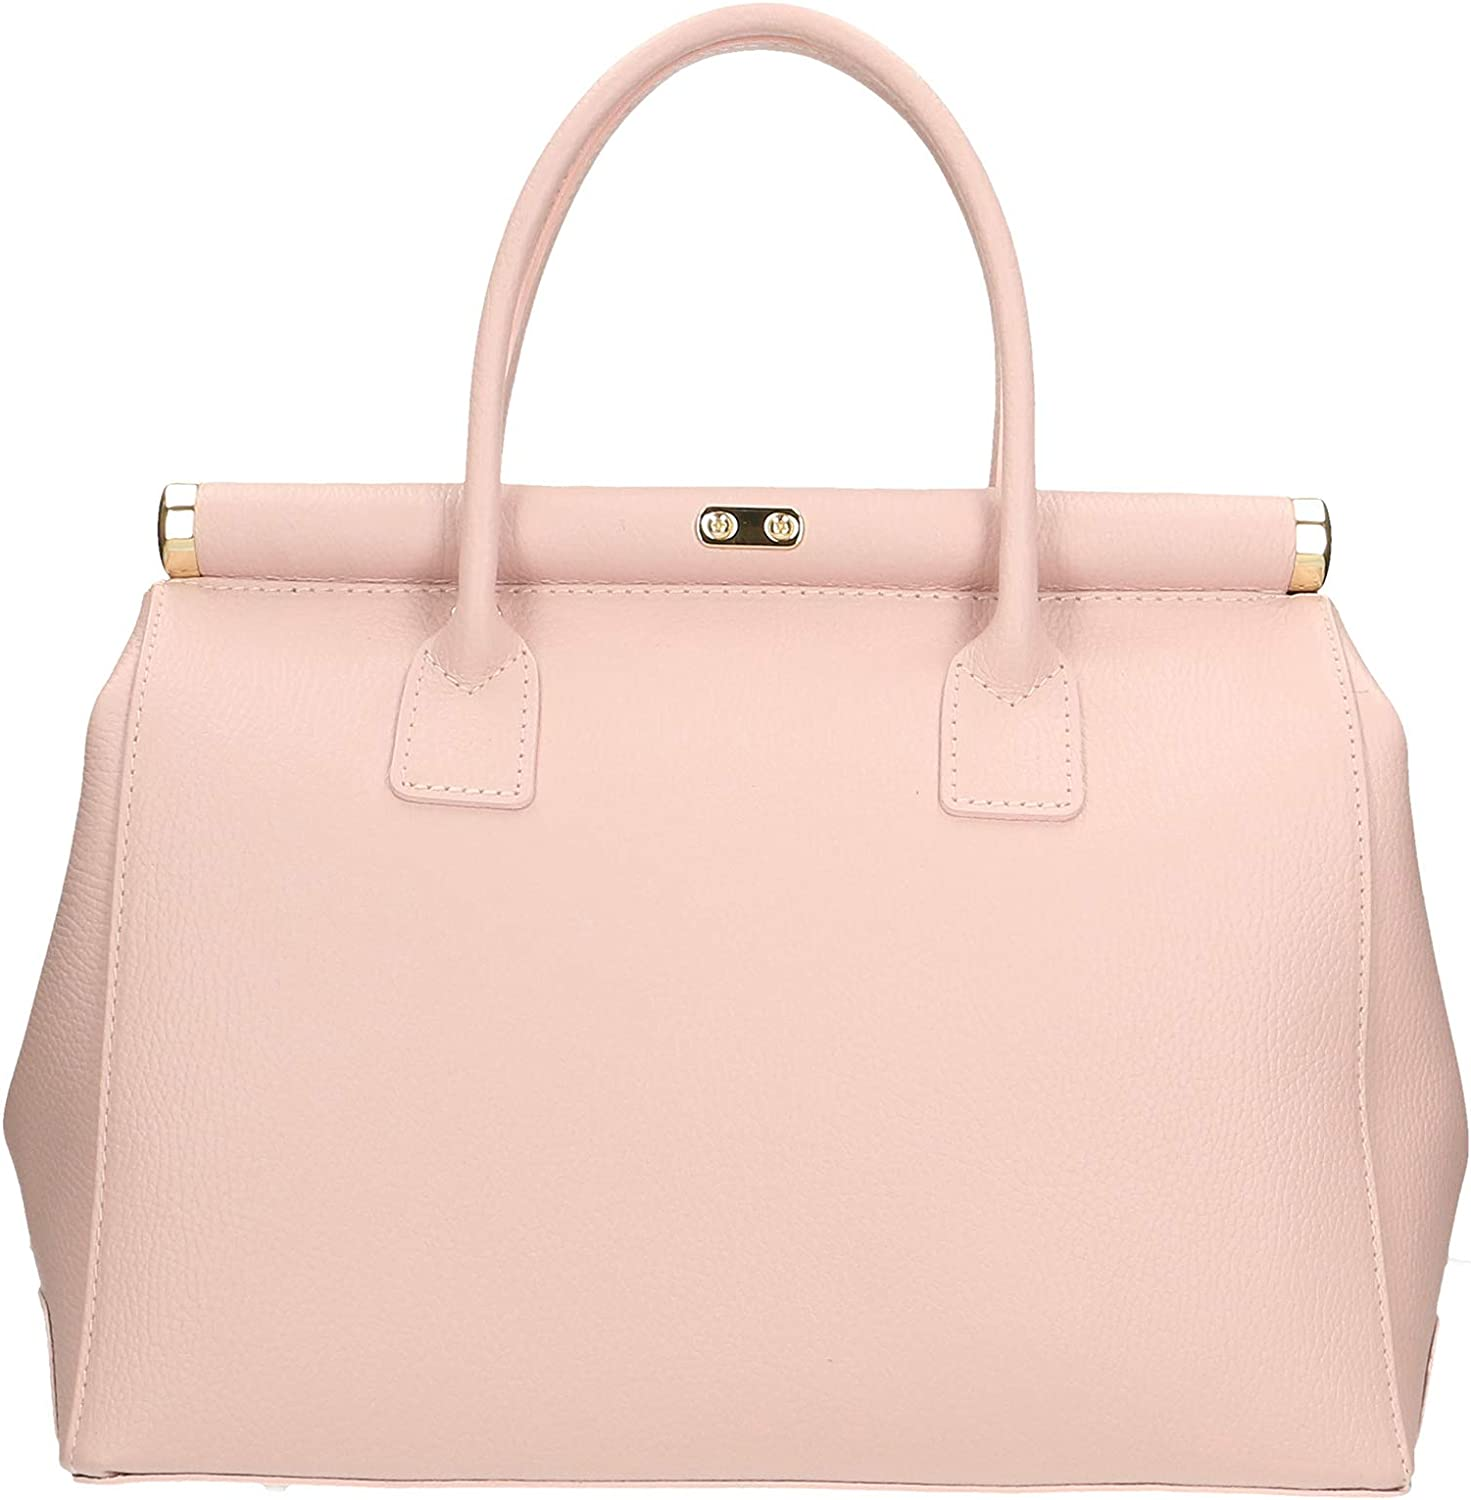 Chicca Borse Bag Borsa a Mano in Pelle Made in Italy 35x28x16 cm Rosa